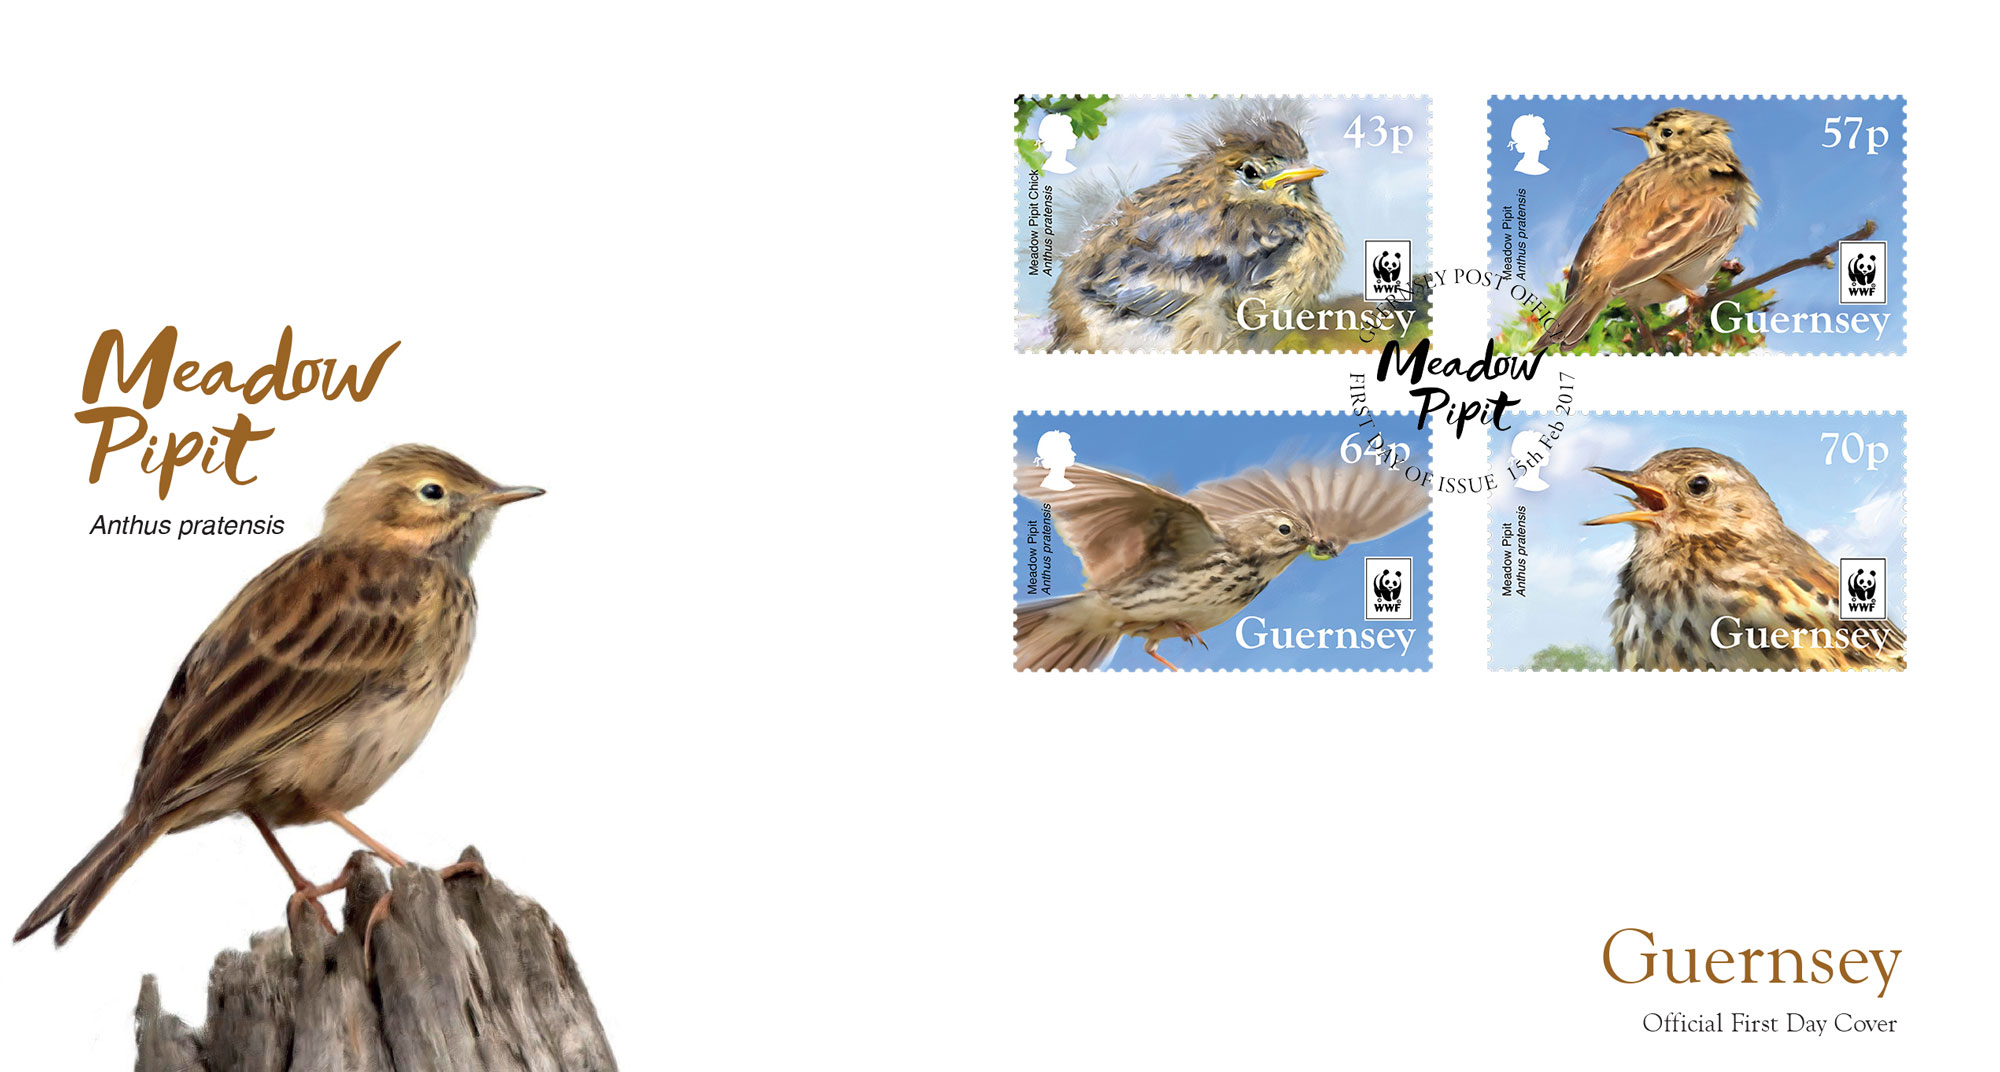 2017 WWFMeadow Pipit FDC with stamps